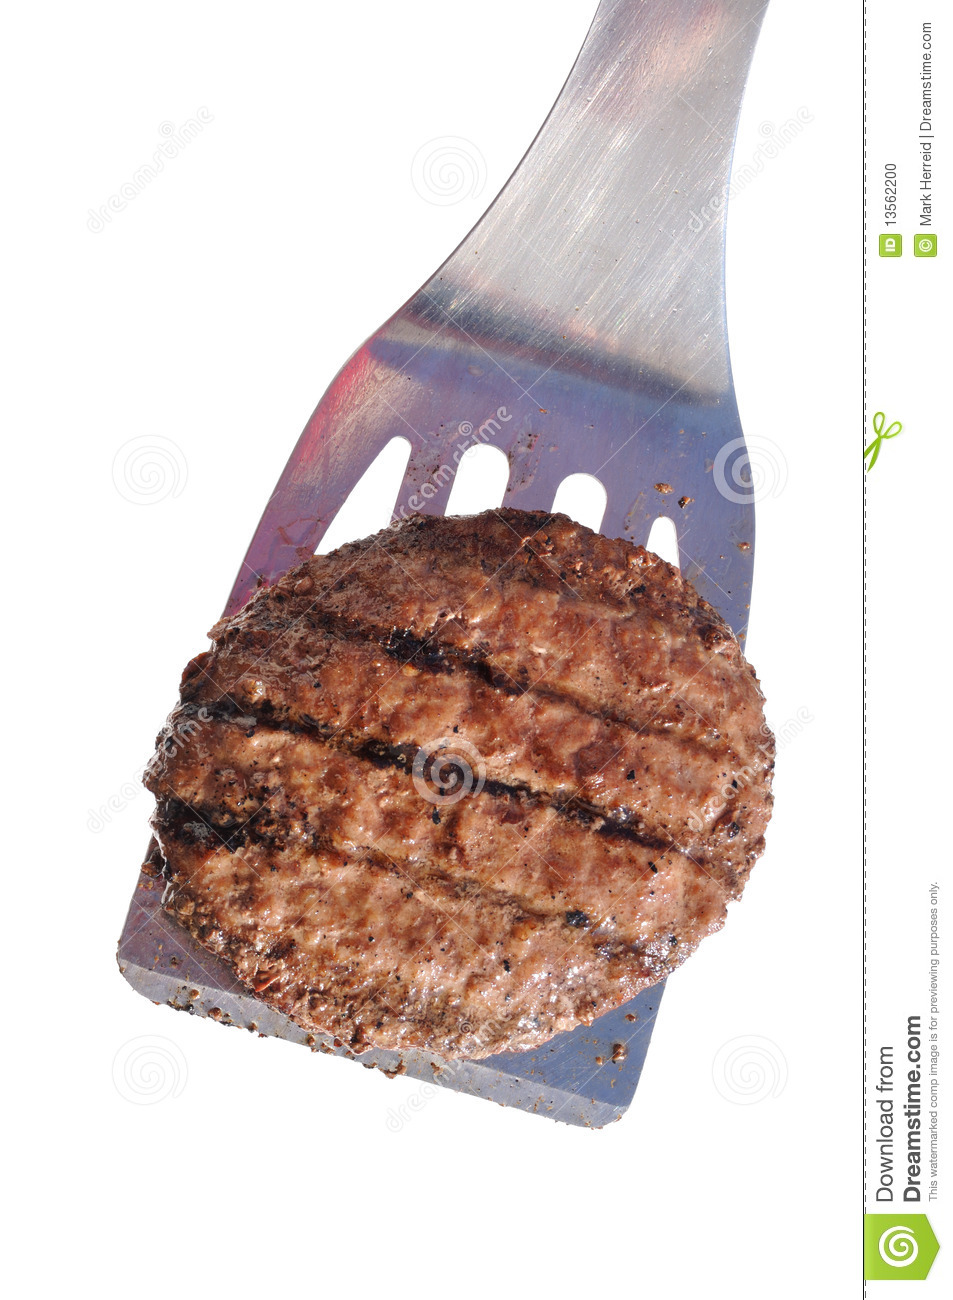 More similar stock images of   Grilled Hamburger Patty on a Spatula  Grilled Hamburger Patty